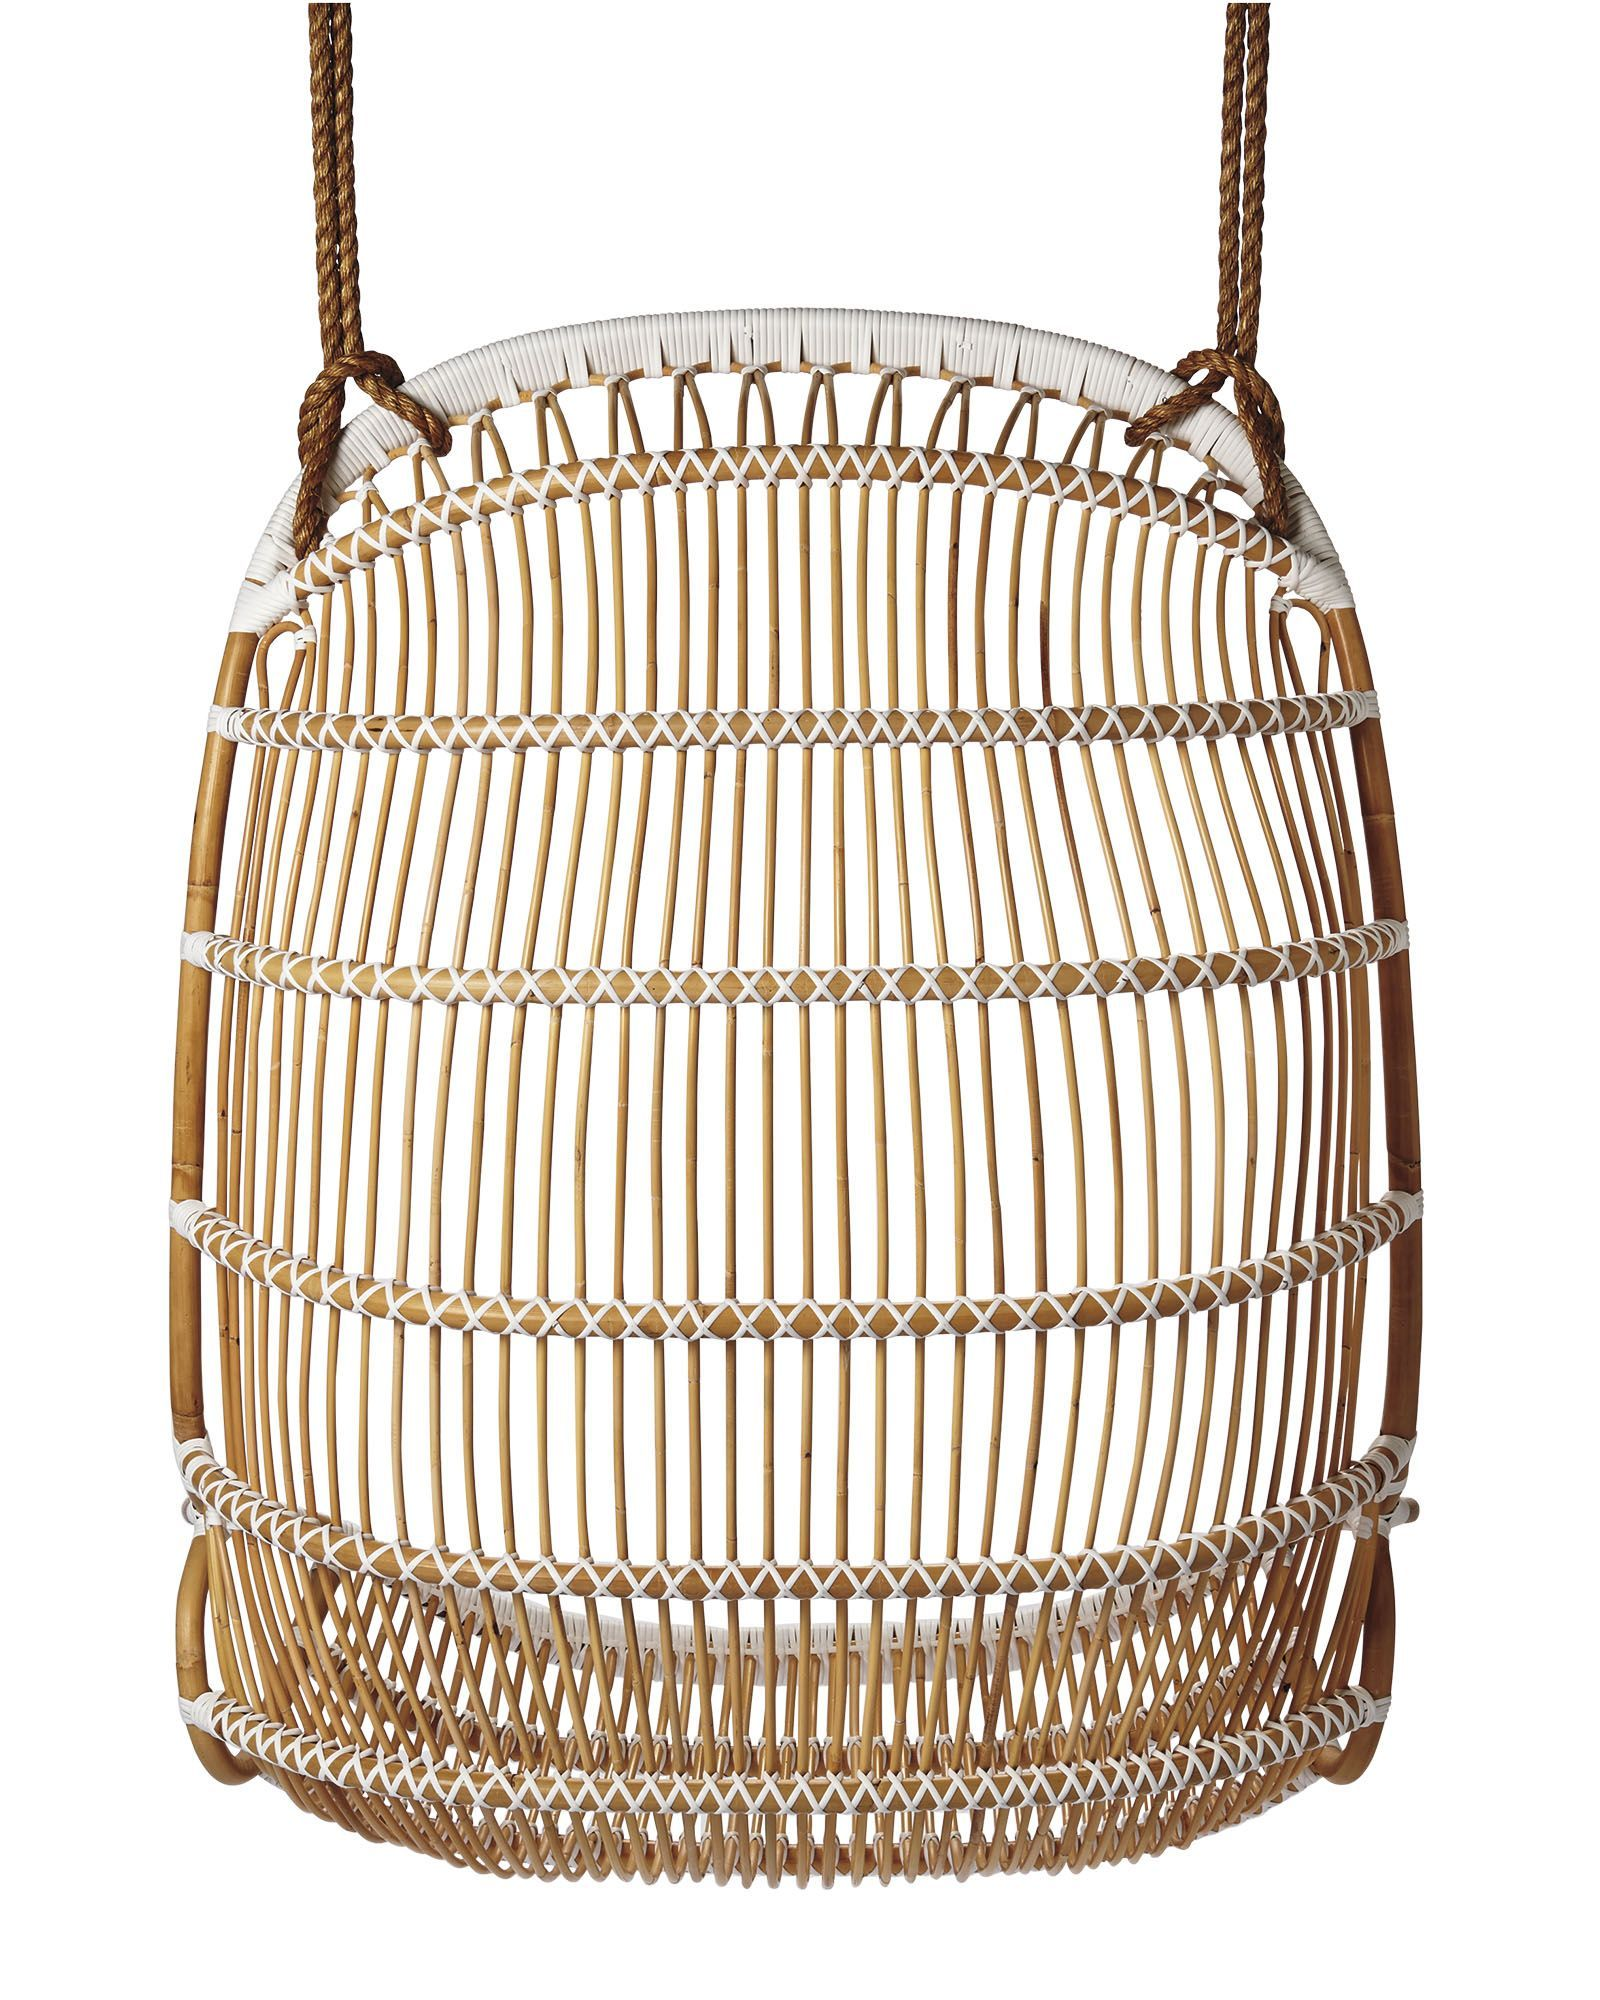 Hanging Chair Restoration Hardware Rope Target Double Rattan Have A Seat Chairdouble Rattanchairs